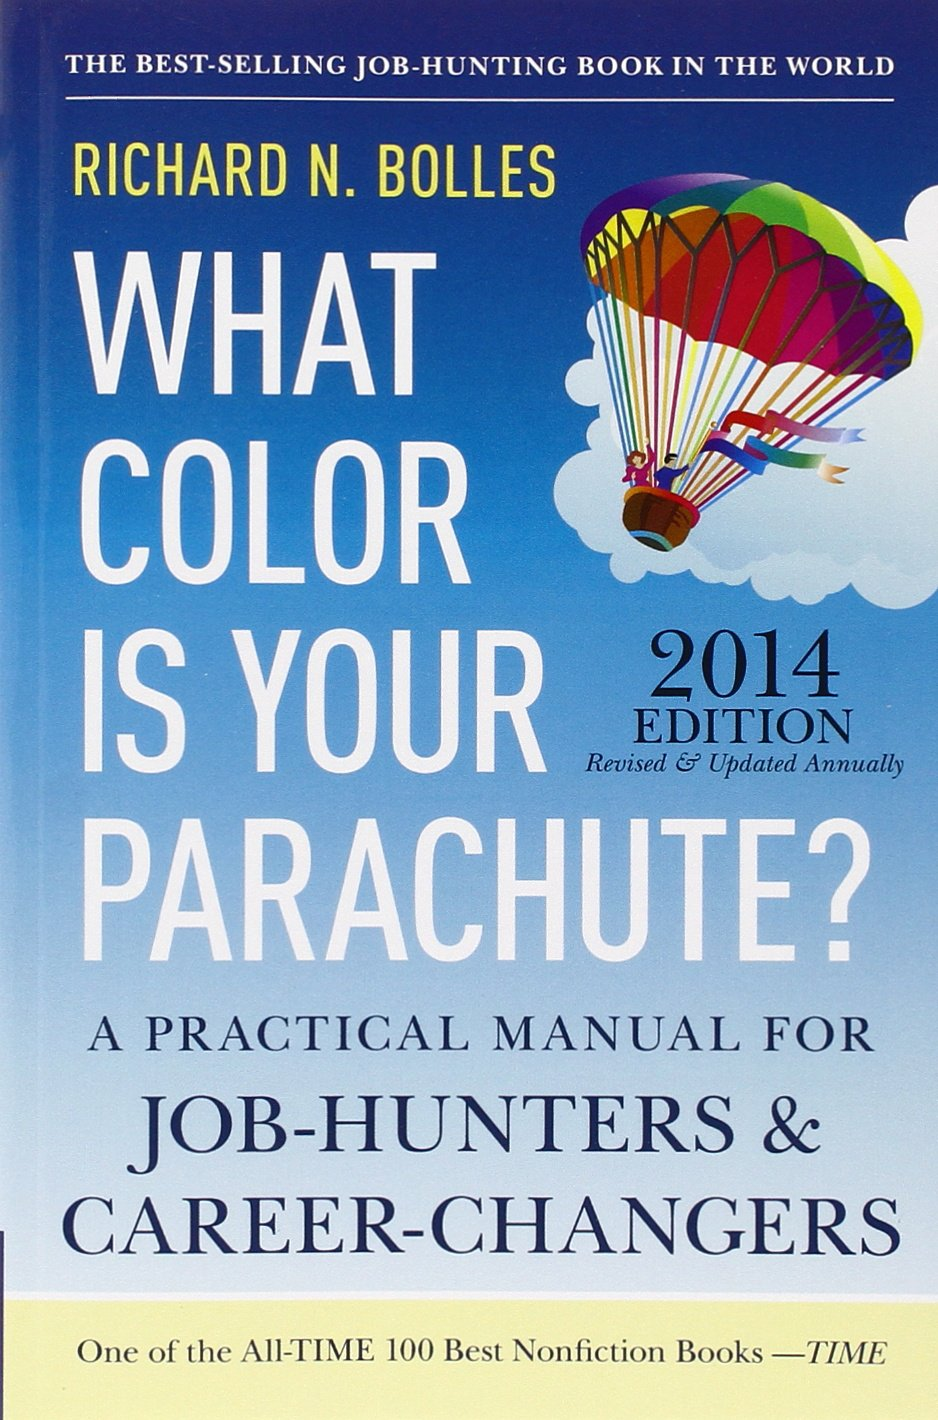 What Color Is Your Parachute? 2014: A Practical Manual for Job ...